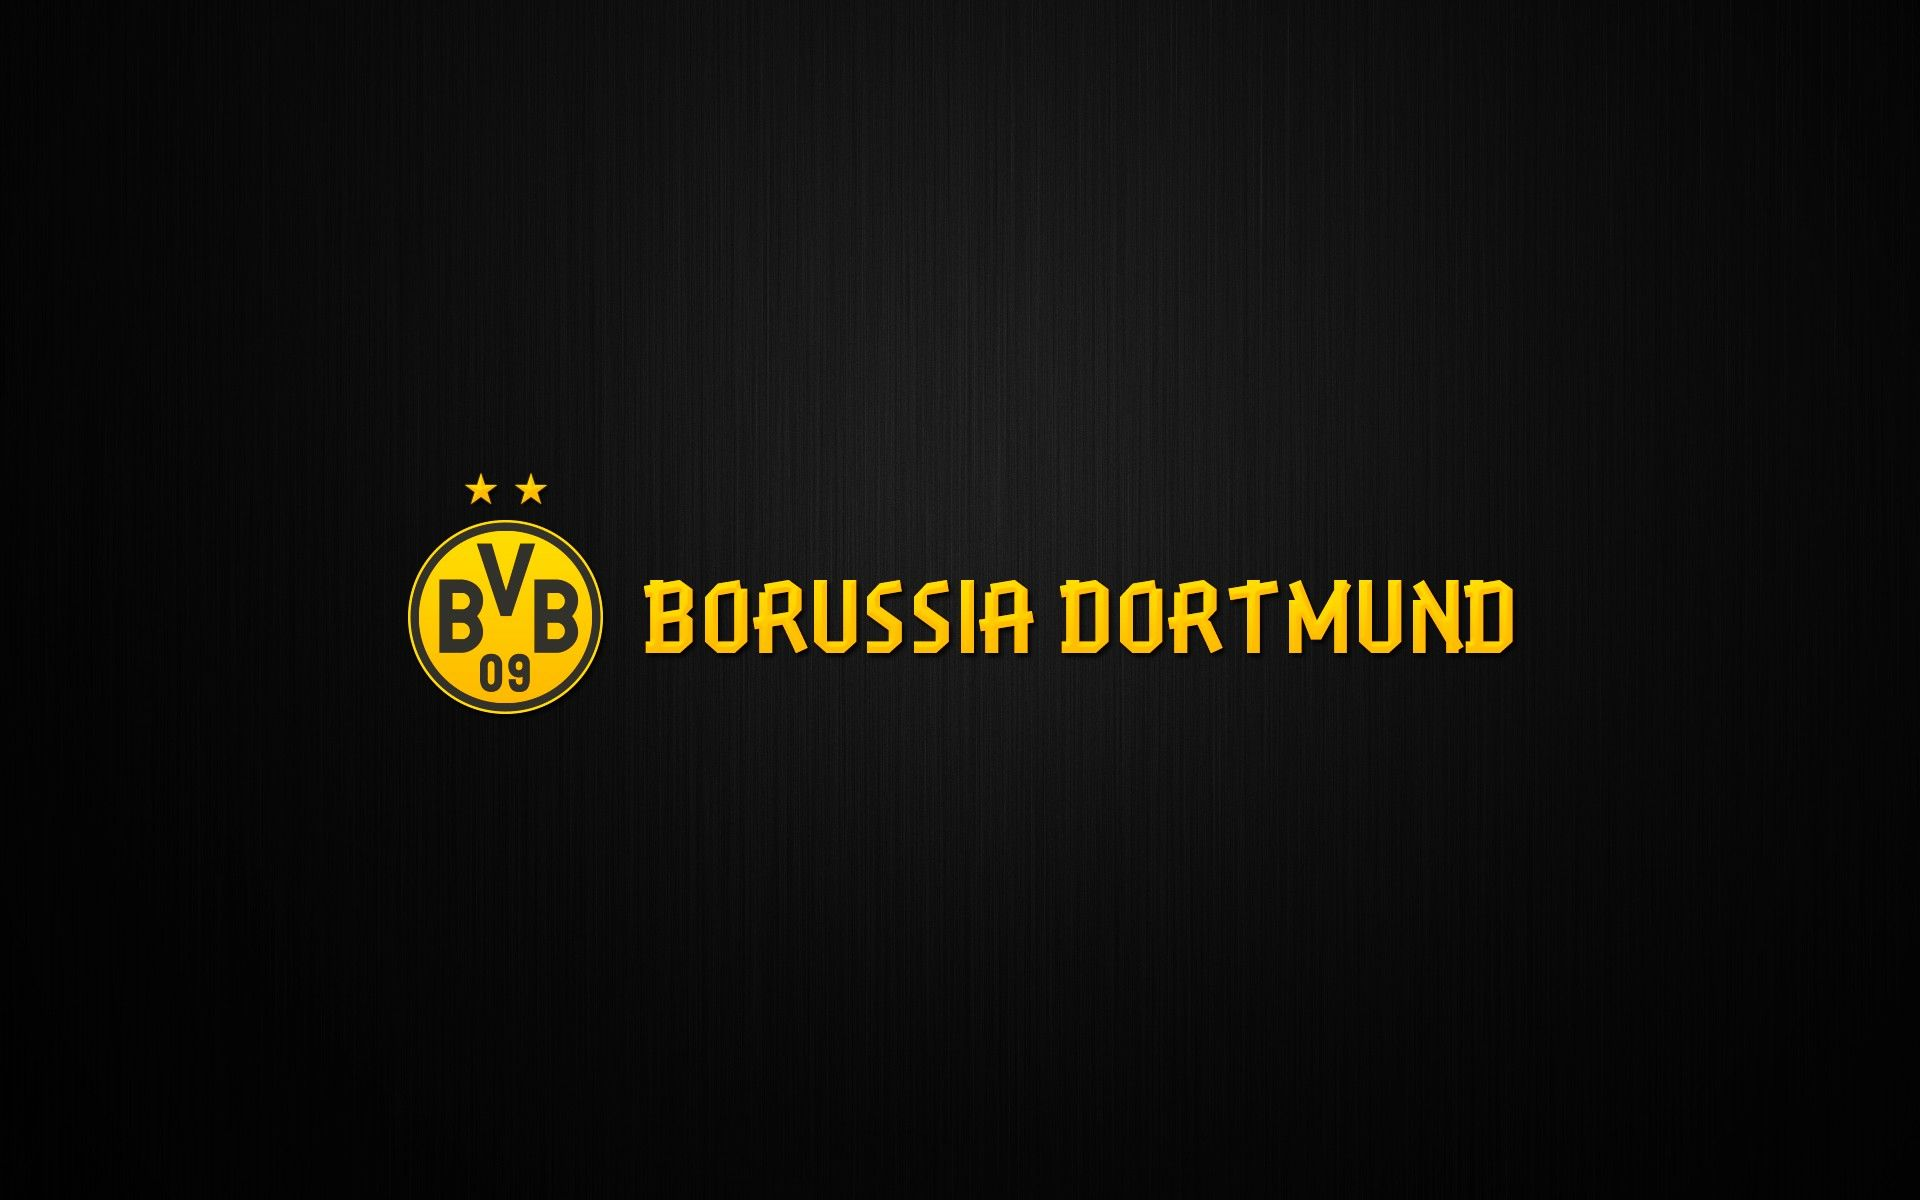 Borussia Dortmund 2013 Wallpapers